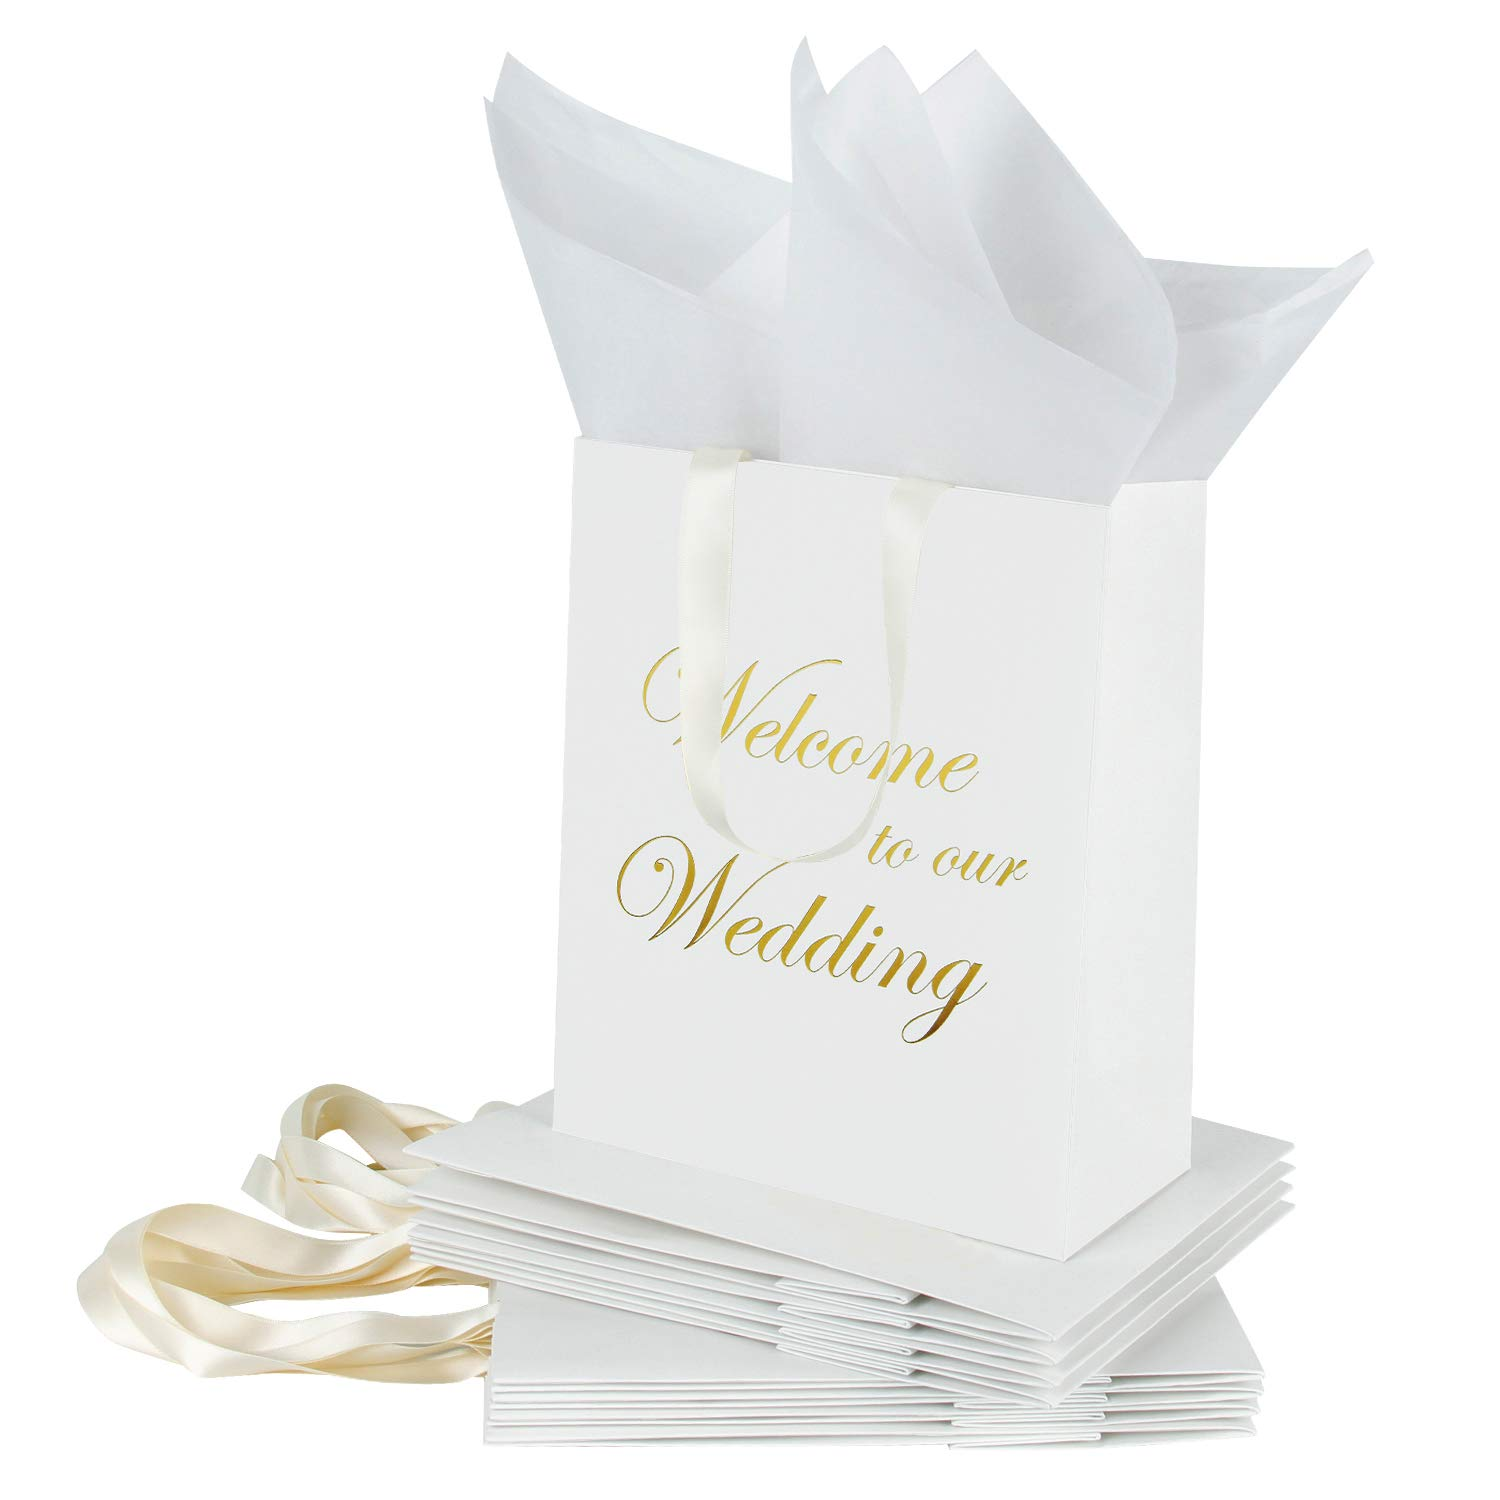 Loveinside Medium Kraft Gift Bags-Welcome to Our Wedding Gold Foil White Paper Gift Bag with Tissue Paper - Wedding,Party Favor,Bridesmaids Gift-12Pack -8'' X 4'' X 10''